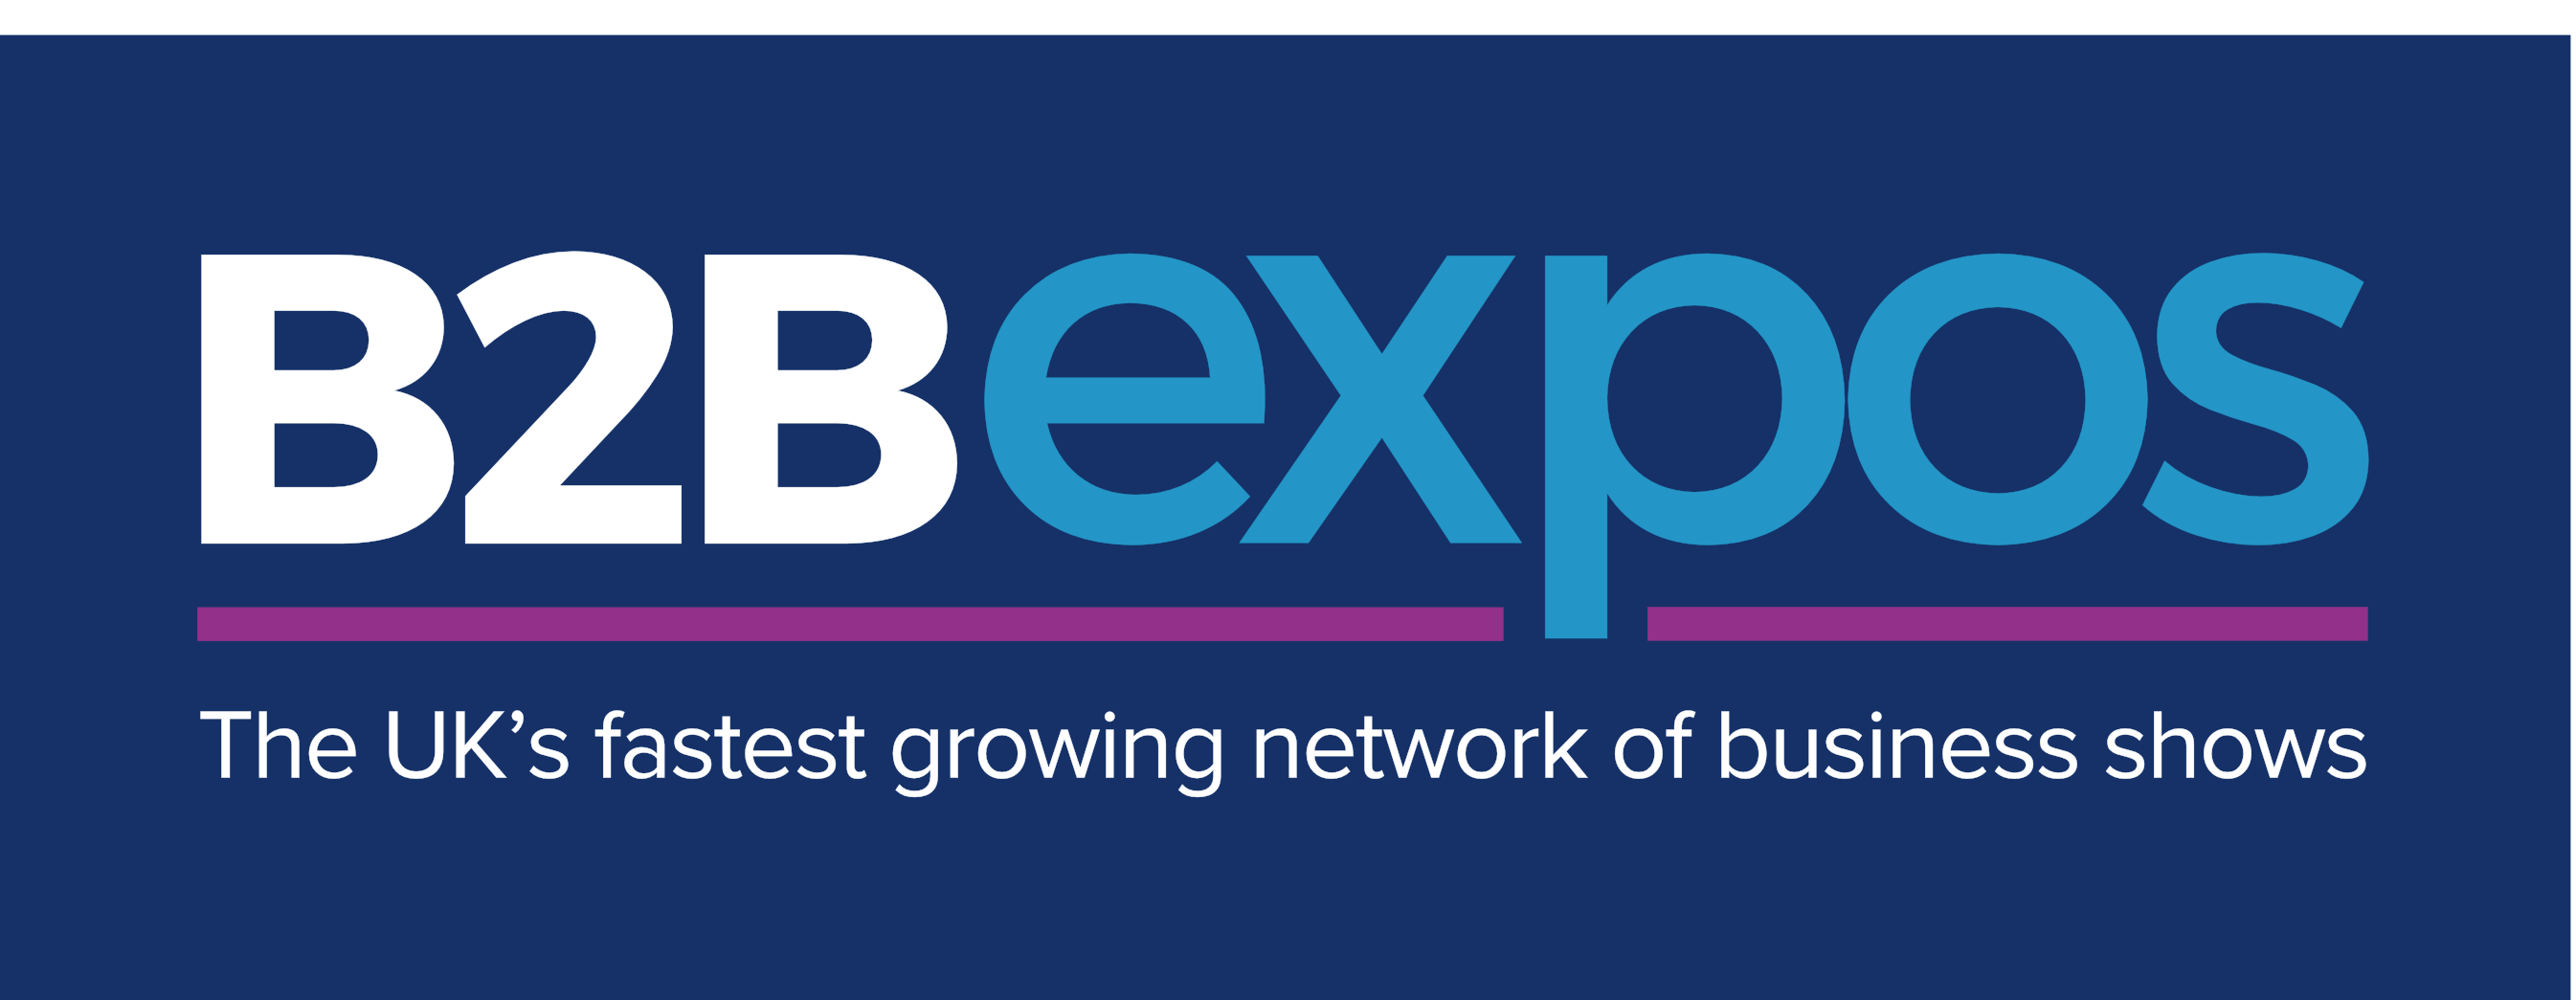 B2B Expos, The UK's premier business expos